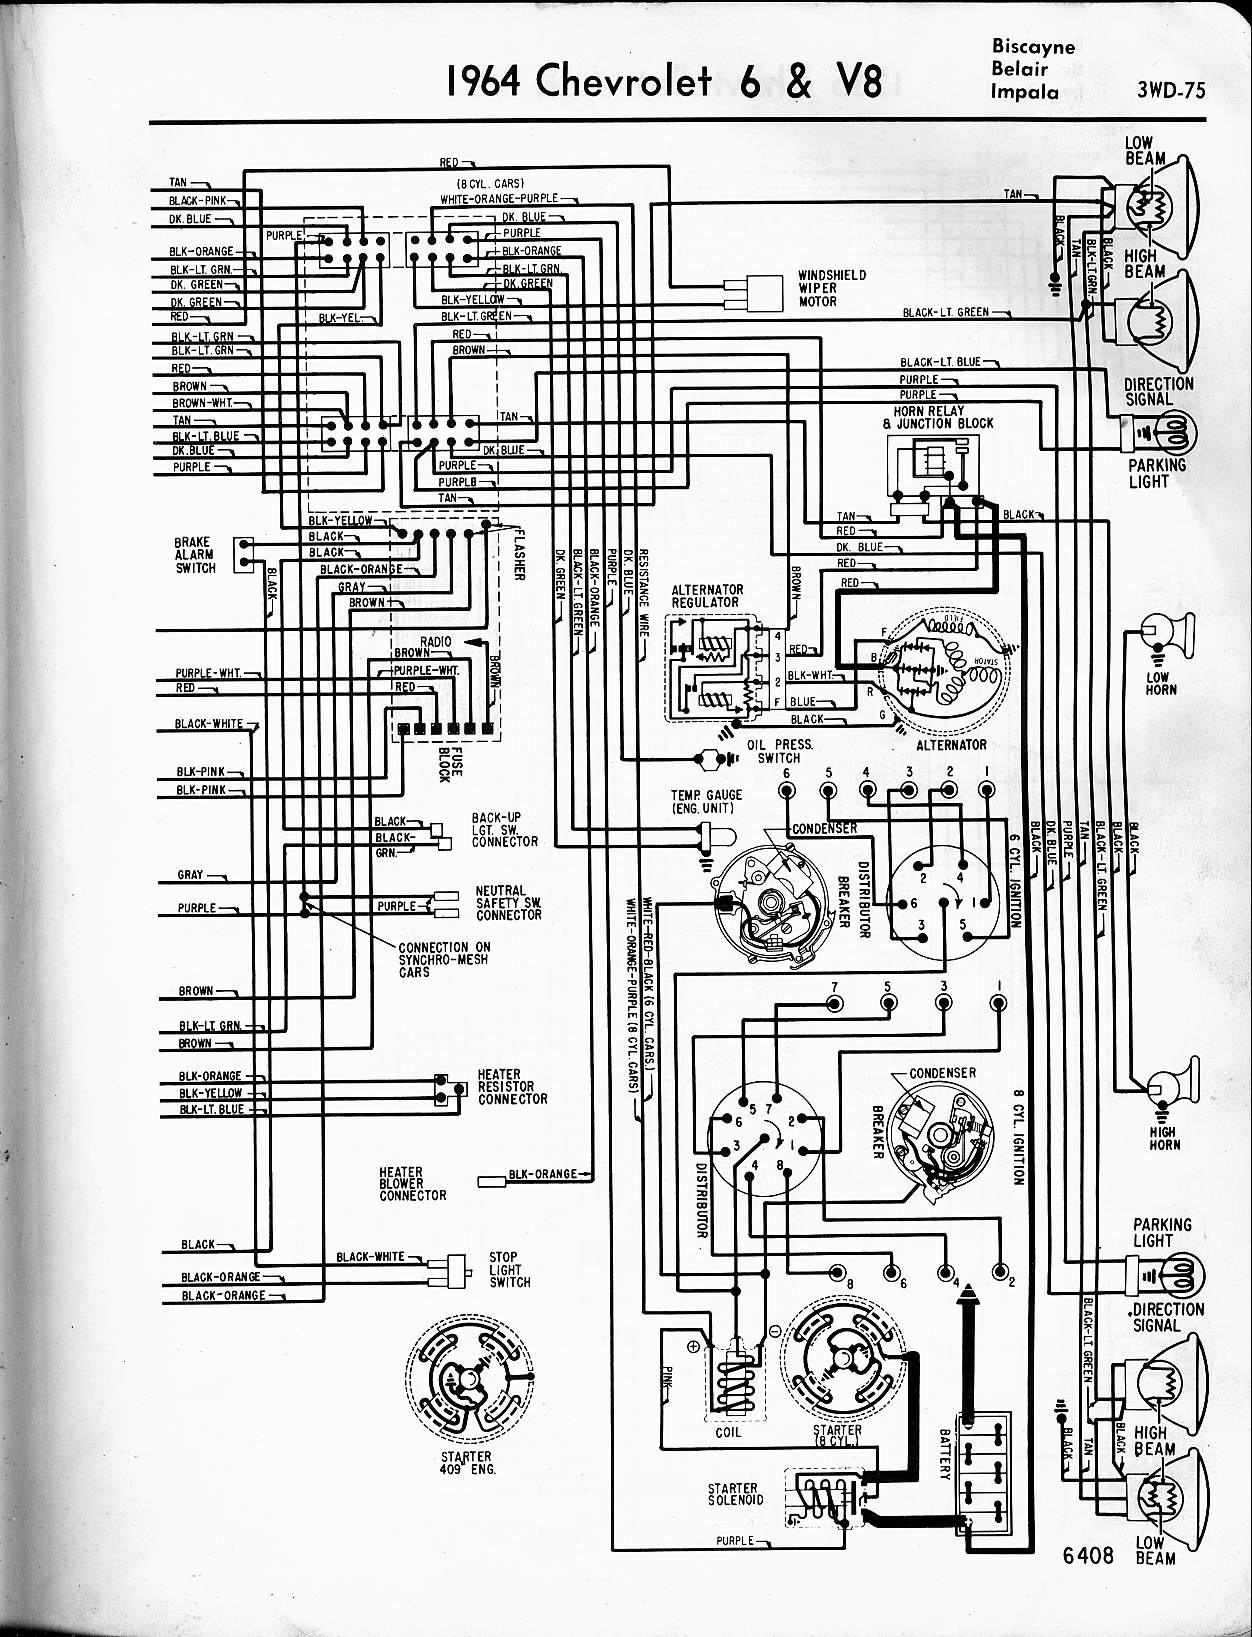 1967 impala gauge wiring diagram basic electronics wiring diagram 2001 Impala Exhaust Diagram 2003 impala fuel gauge wiring diagram wiring diagram detailed